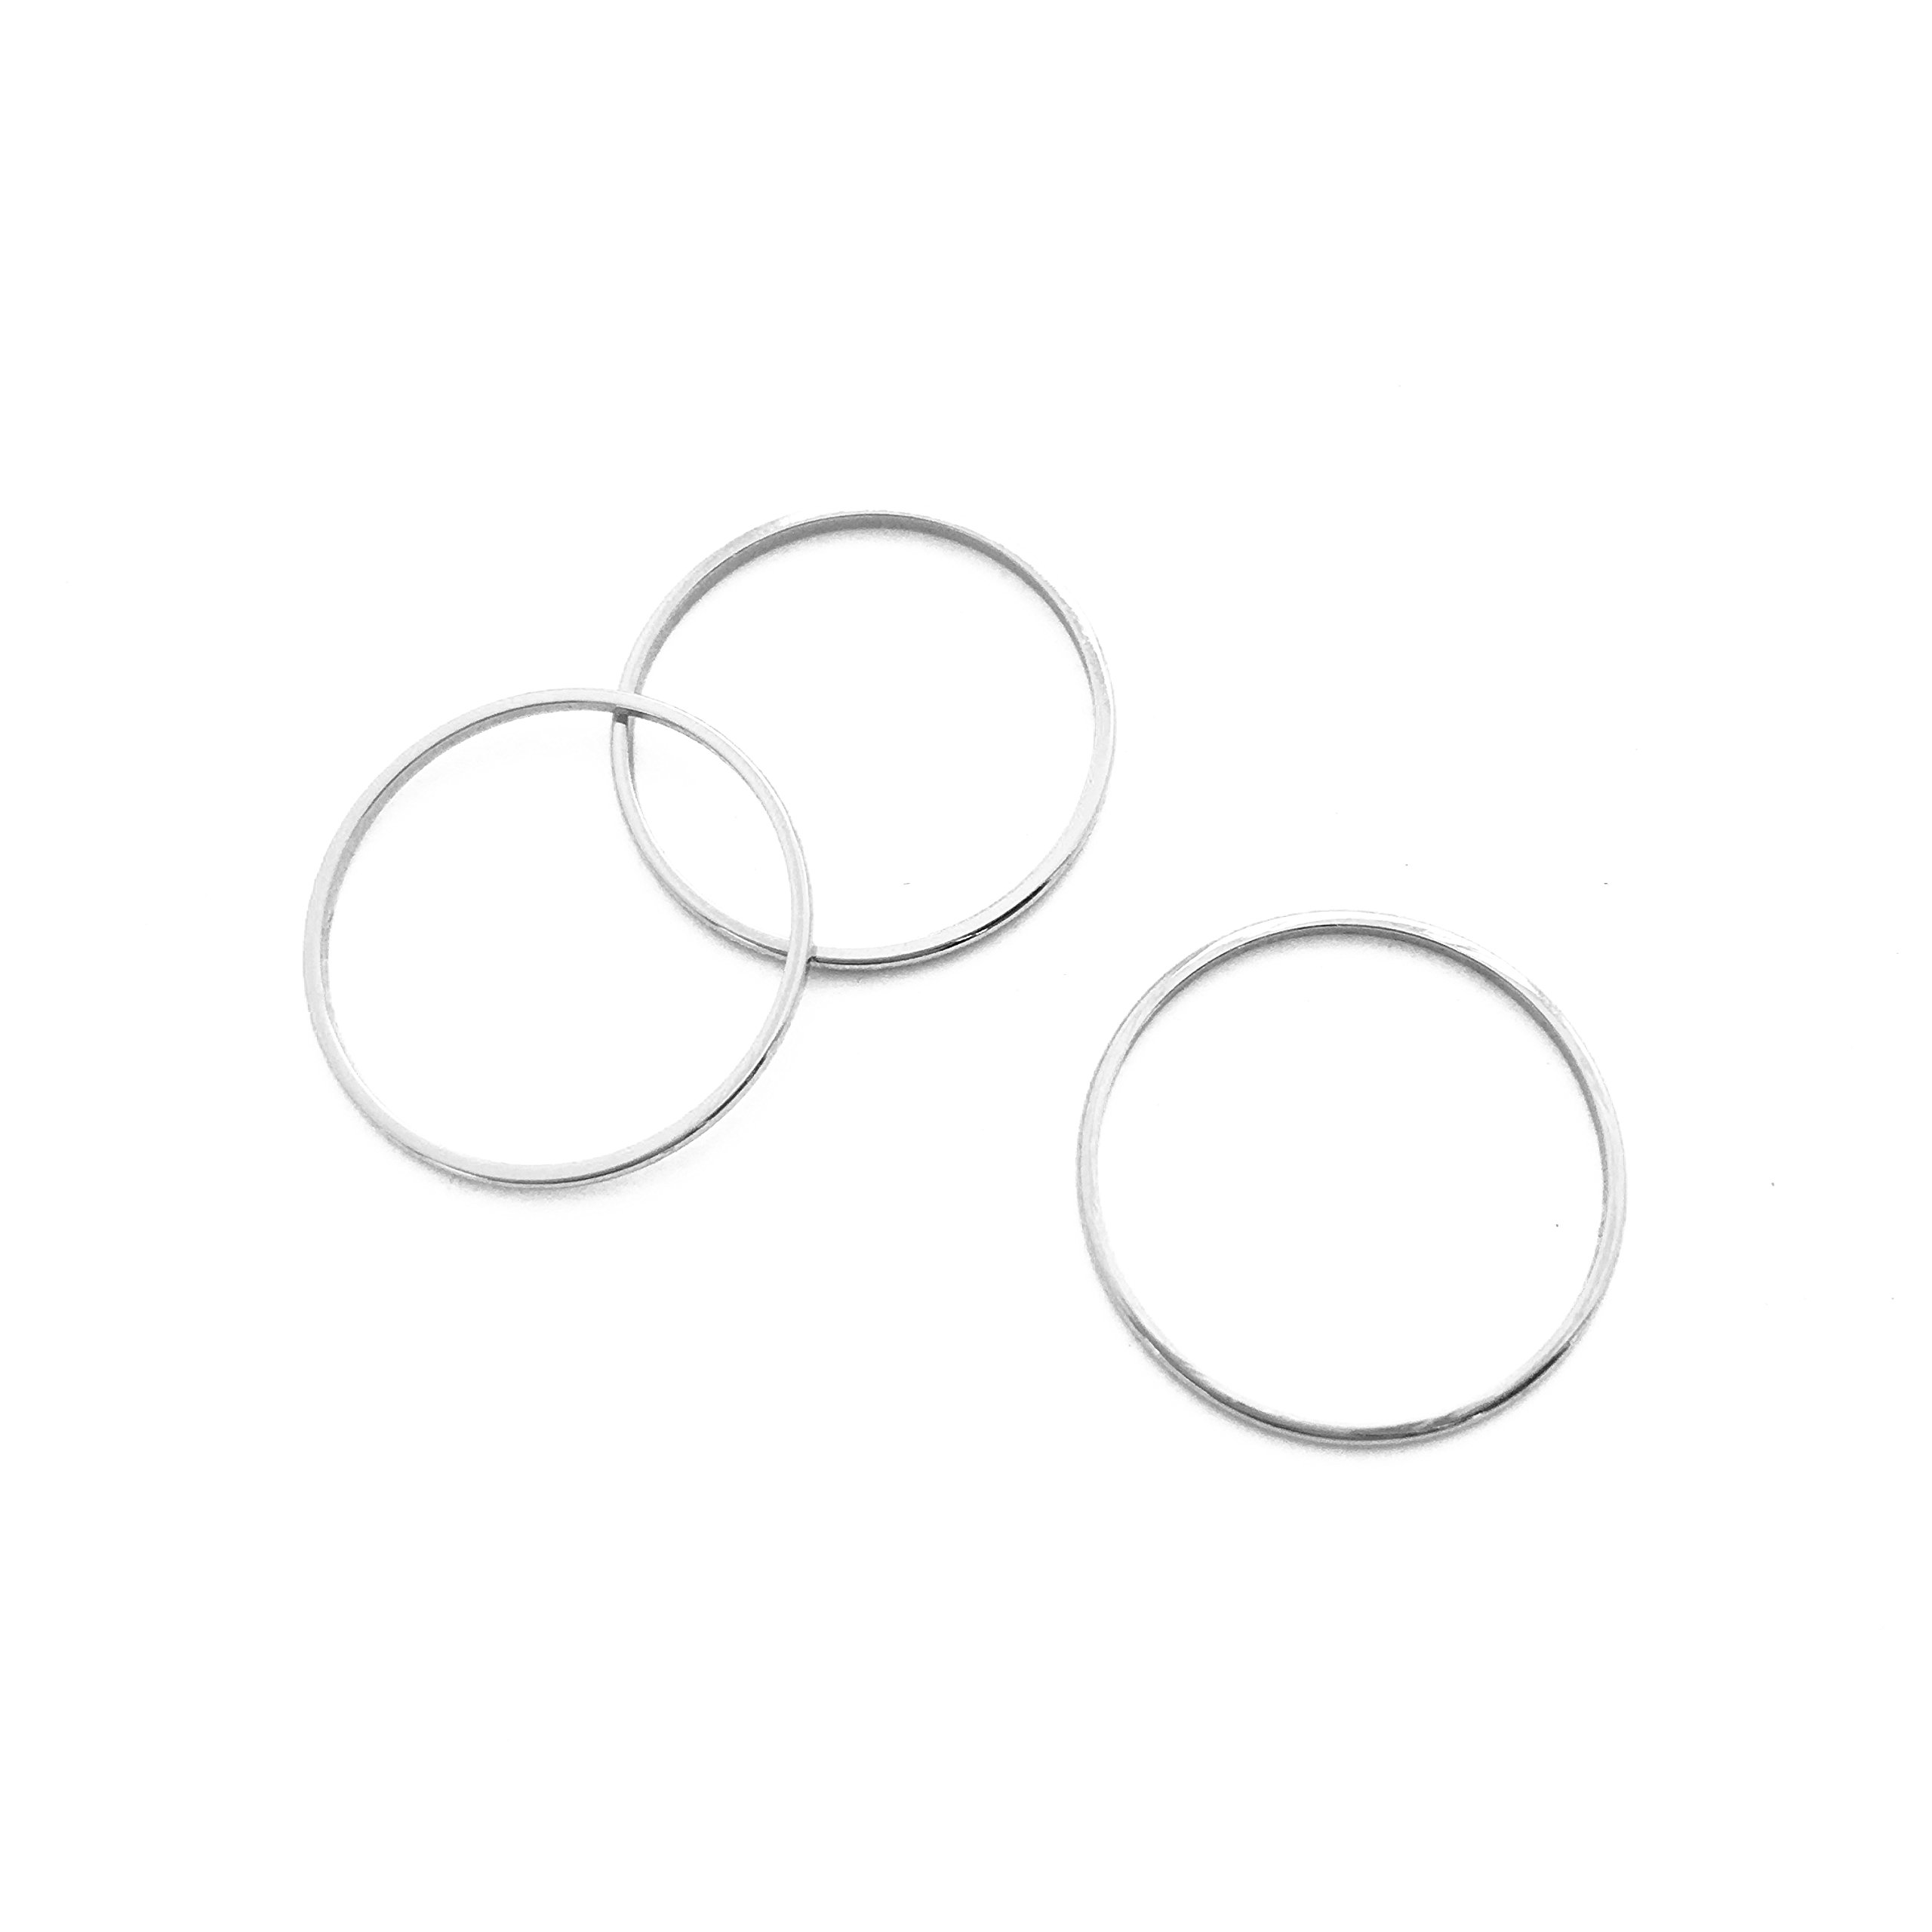 HONEYCAT Sterling Silver Thin Stacking Rings Trio Set | Minimalist, Delicate Jewelry